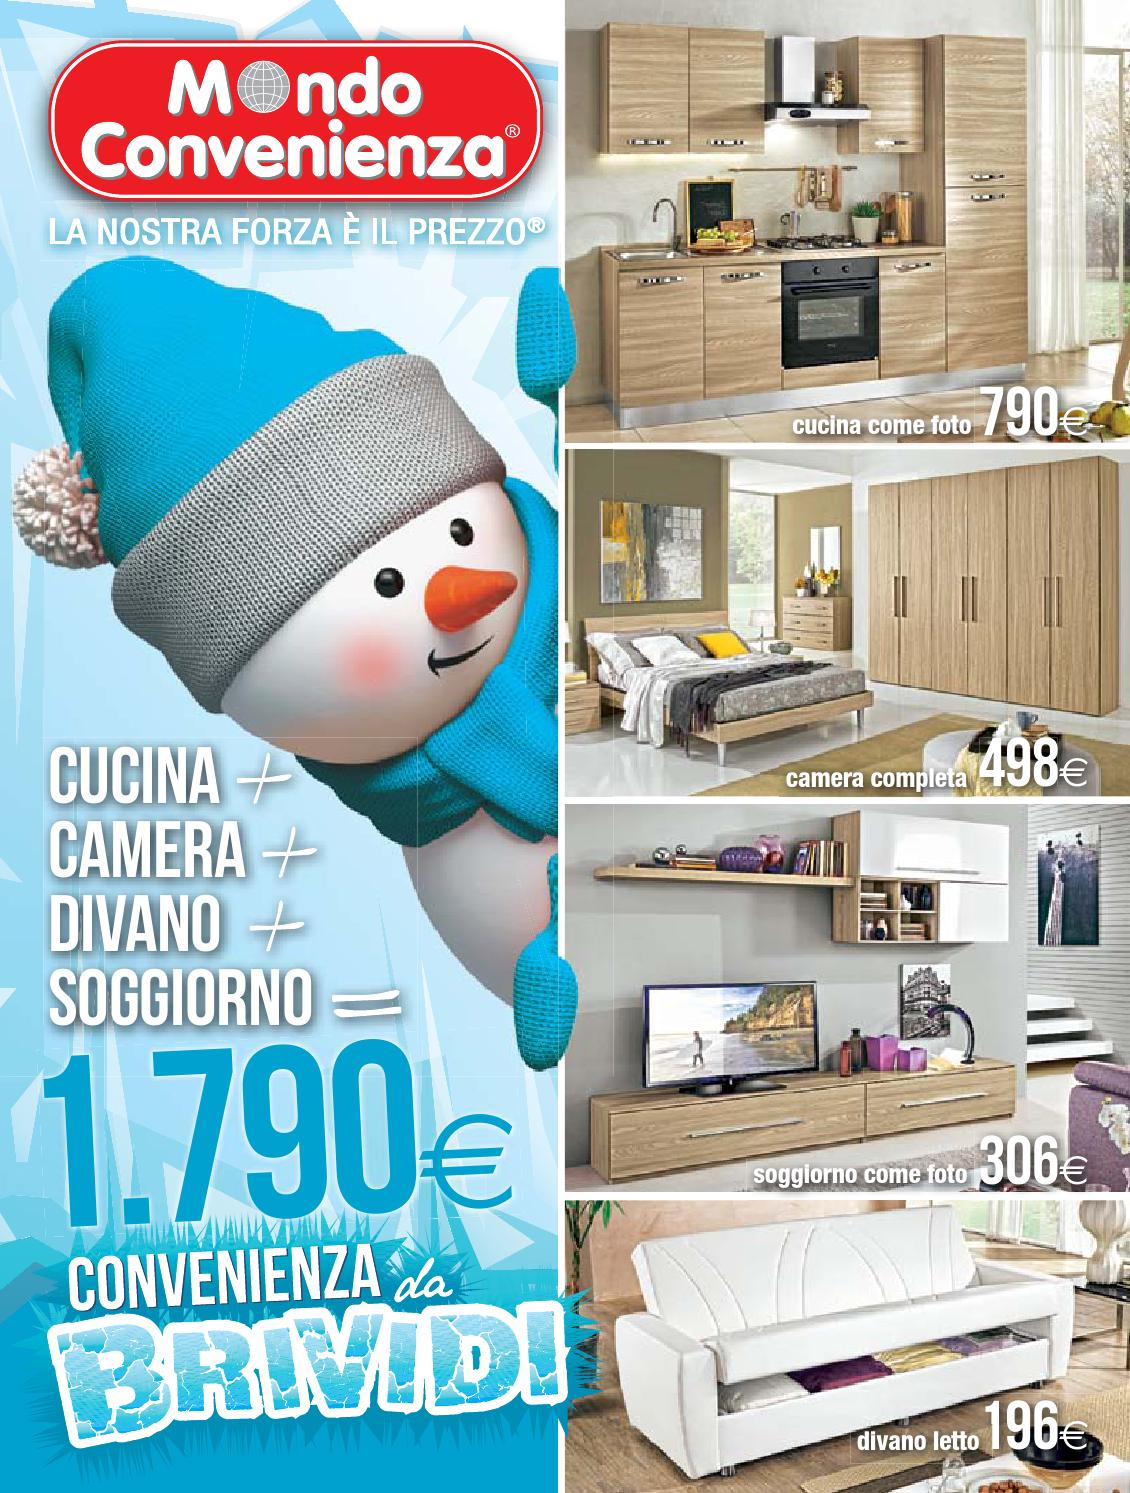 Mondo conv catalogo convenienza da brividi by Mobilpro - issuu